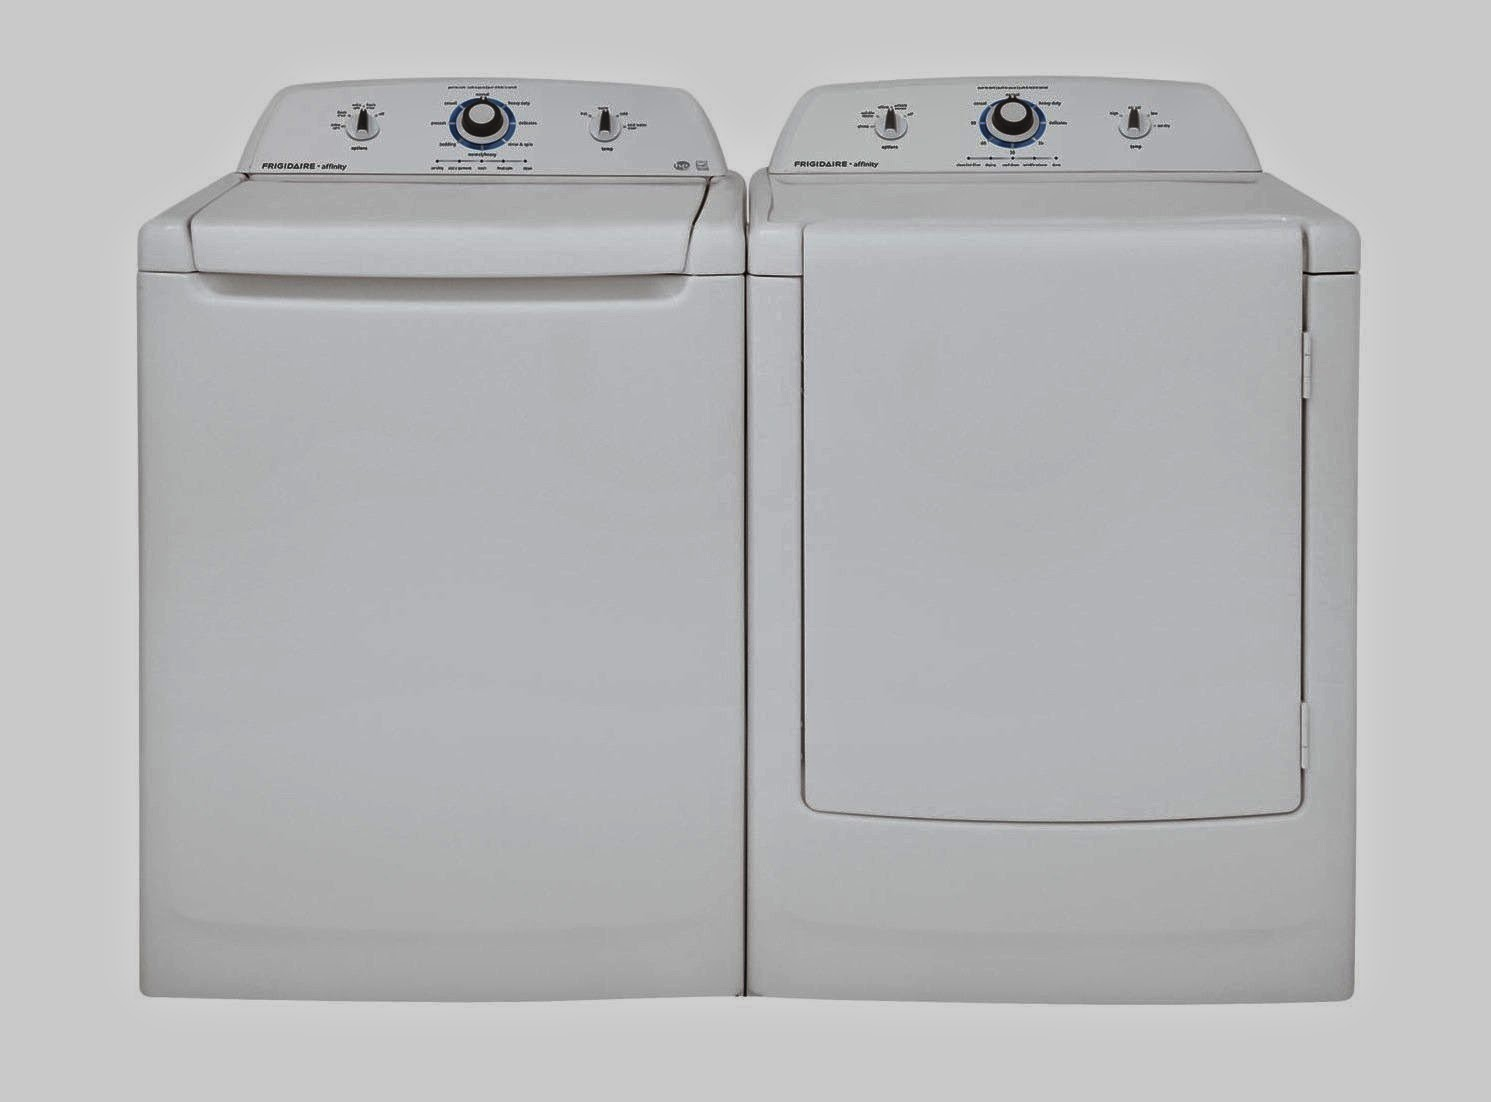 Washer Dryer Reviews Frigidaire Washer And Dryer Reviews